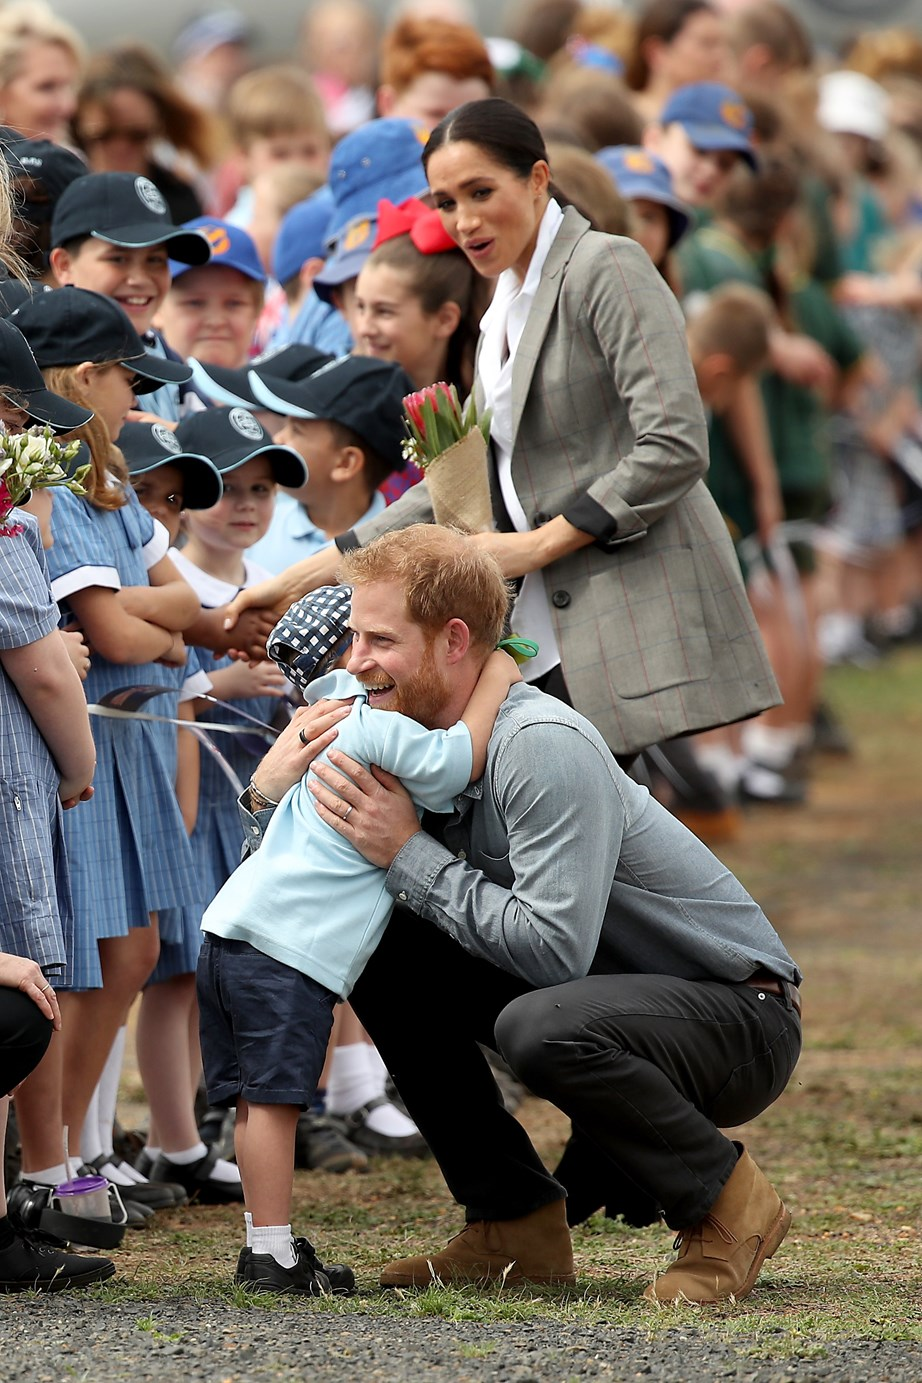 Prince Harry has caught the hearts of people all over the world!